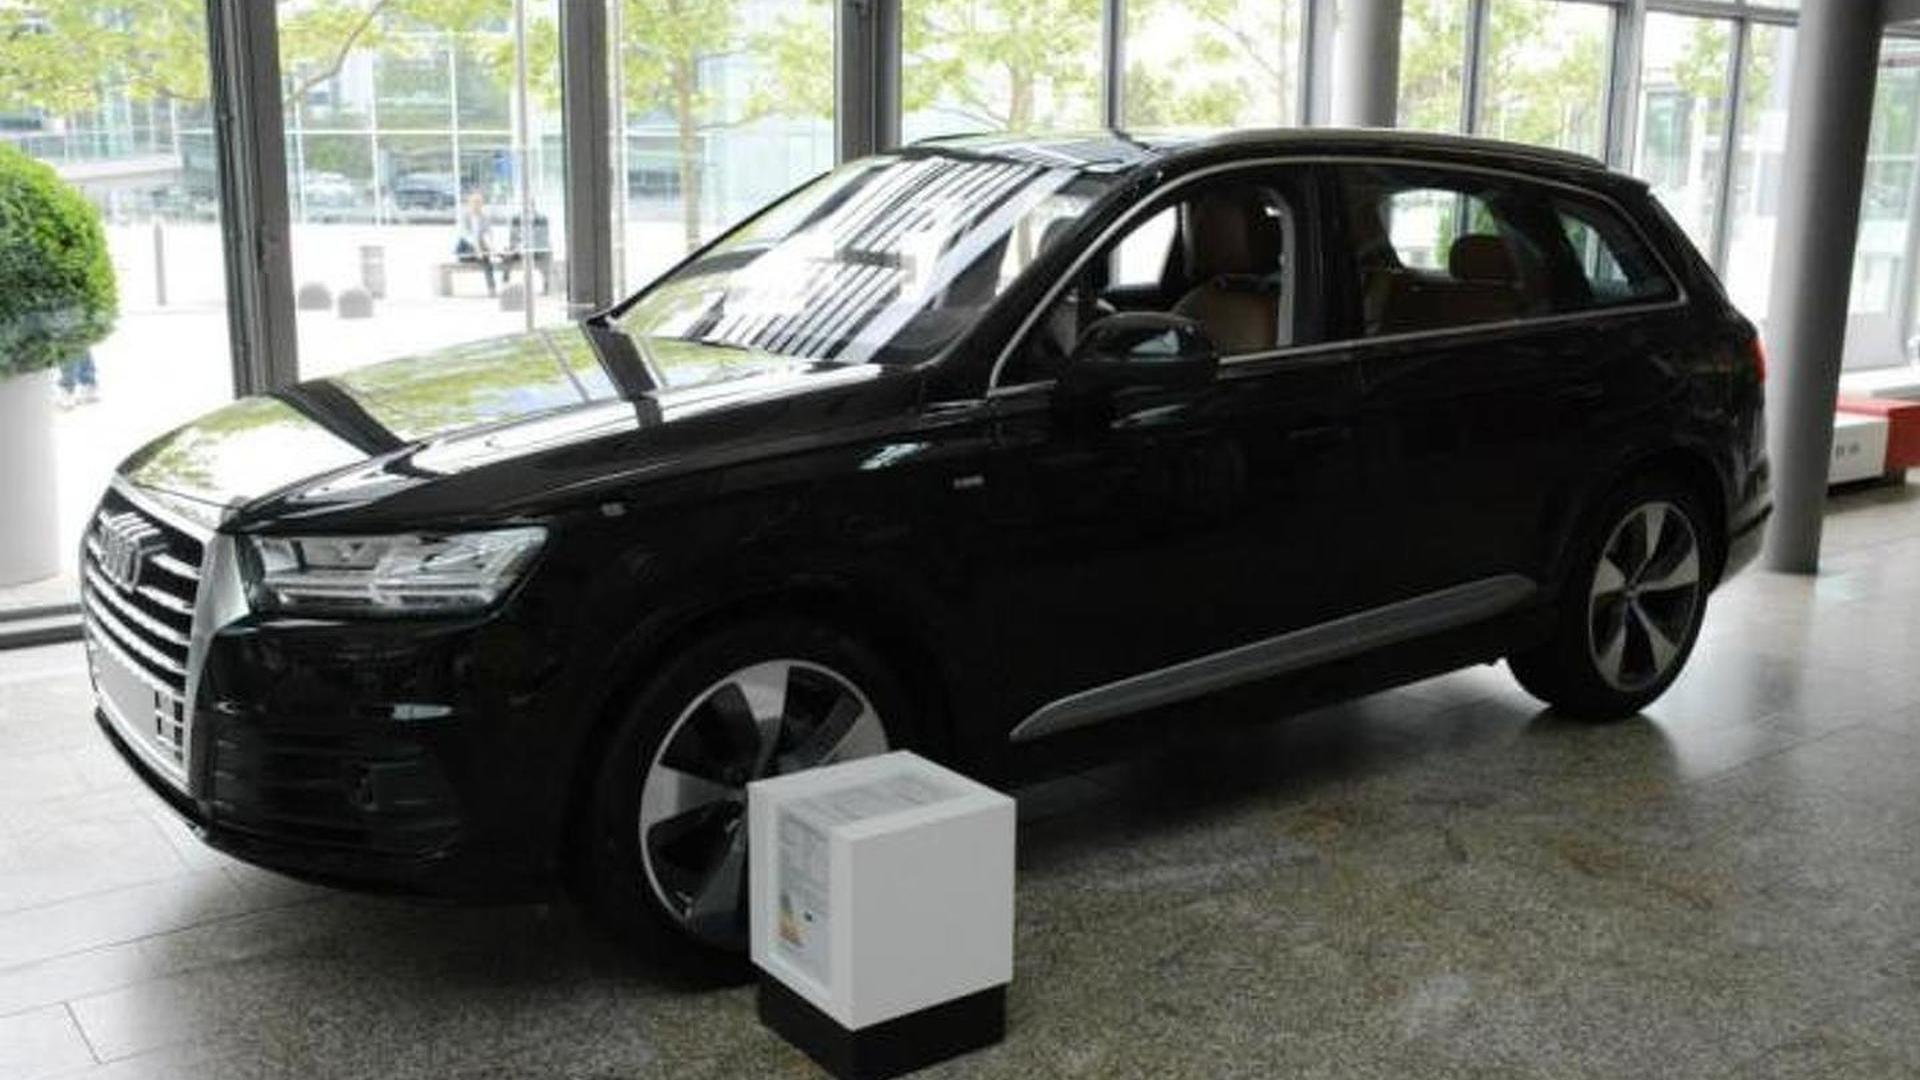 audi forum ingolstadt shows off black q7 3 0 tdi quattro. Black Bedroom Furniture Sets. Home Design Ideas